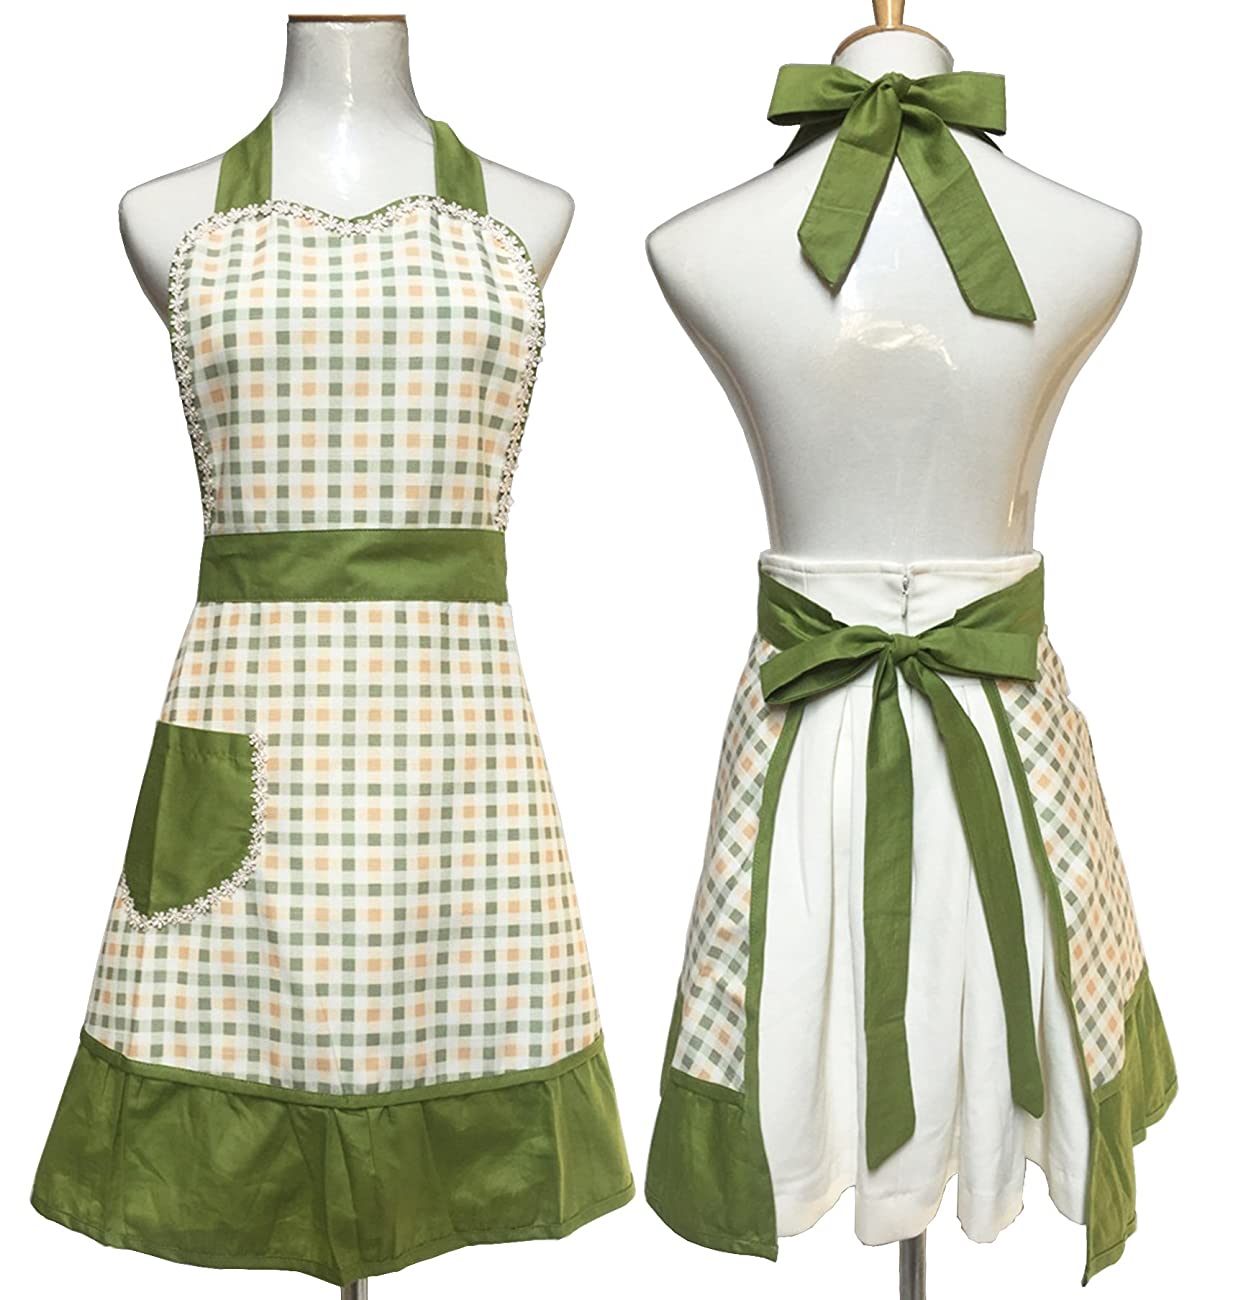 Lovely Sweetheart Retro Kitchen Aprons Woman Girl Cotton Cooking Salon Pinafore Vintage Apron Dress with Pocket,Green 0